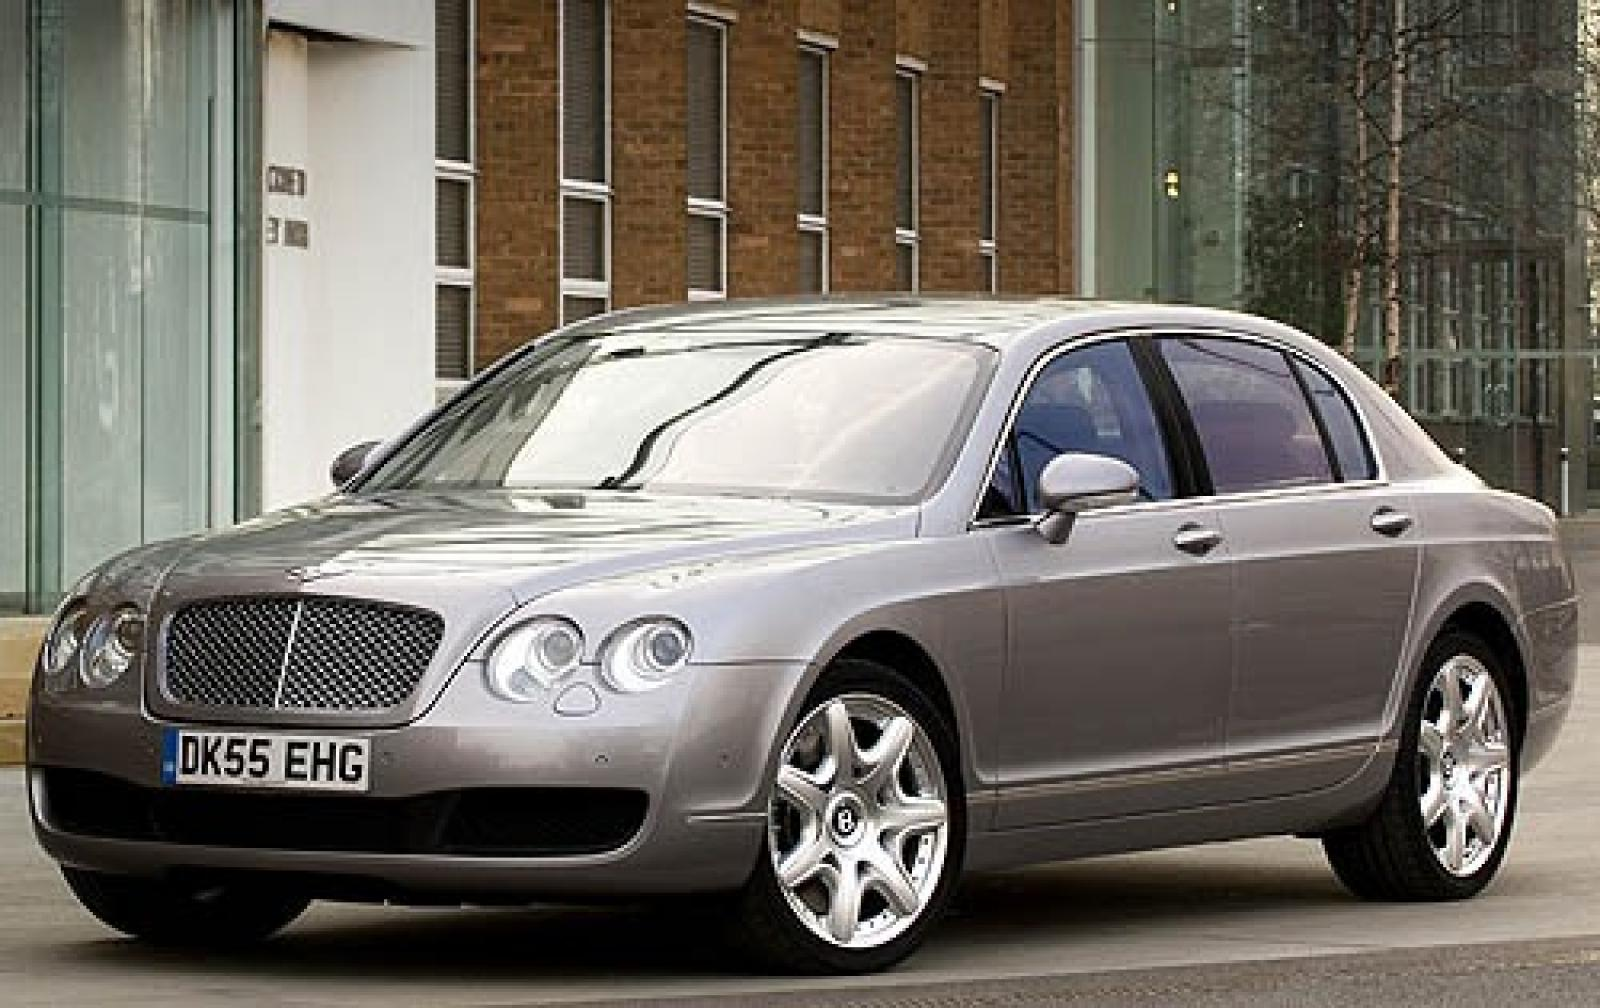 2008 bentley continental flying spur information and photos zombiedrive. Black Bedroom Furniture Sets. Home Design Ideas